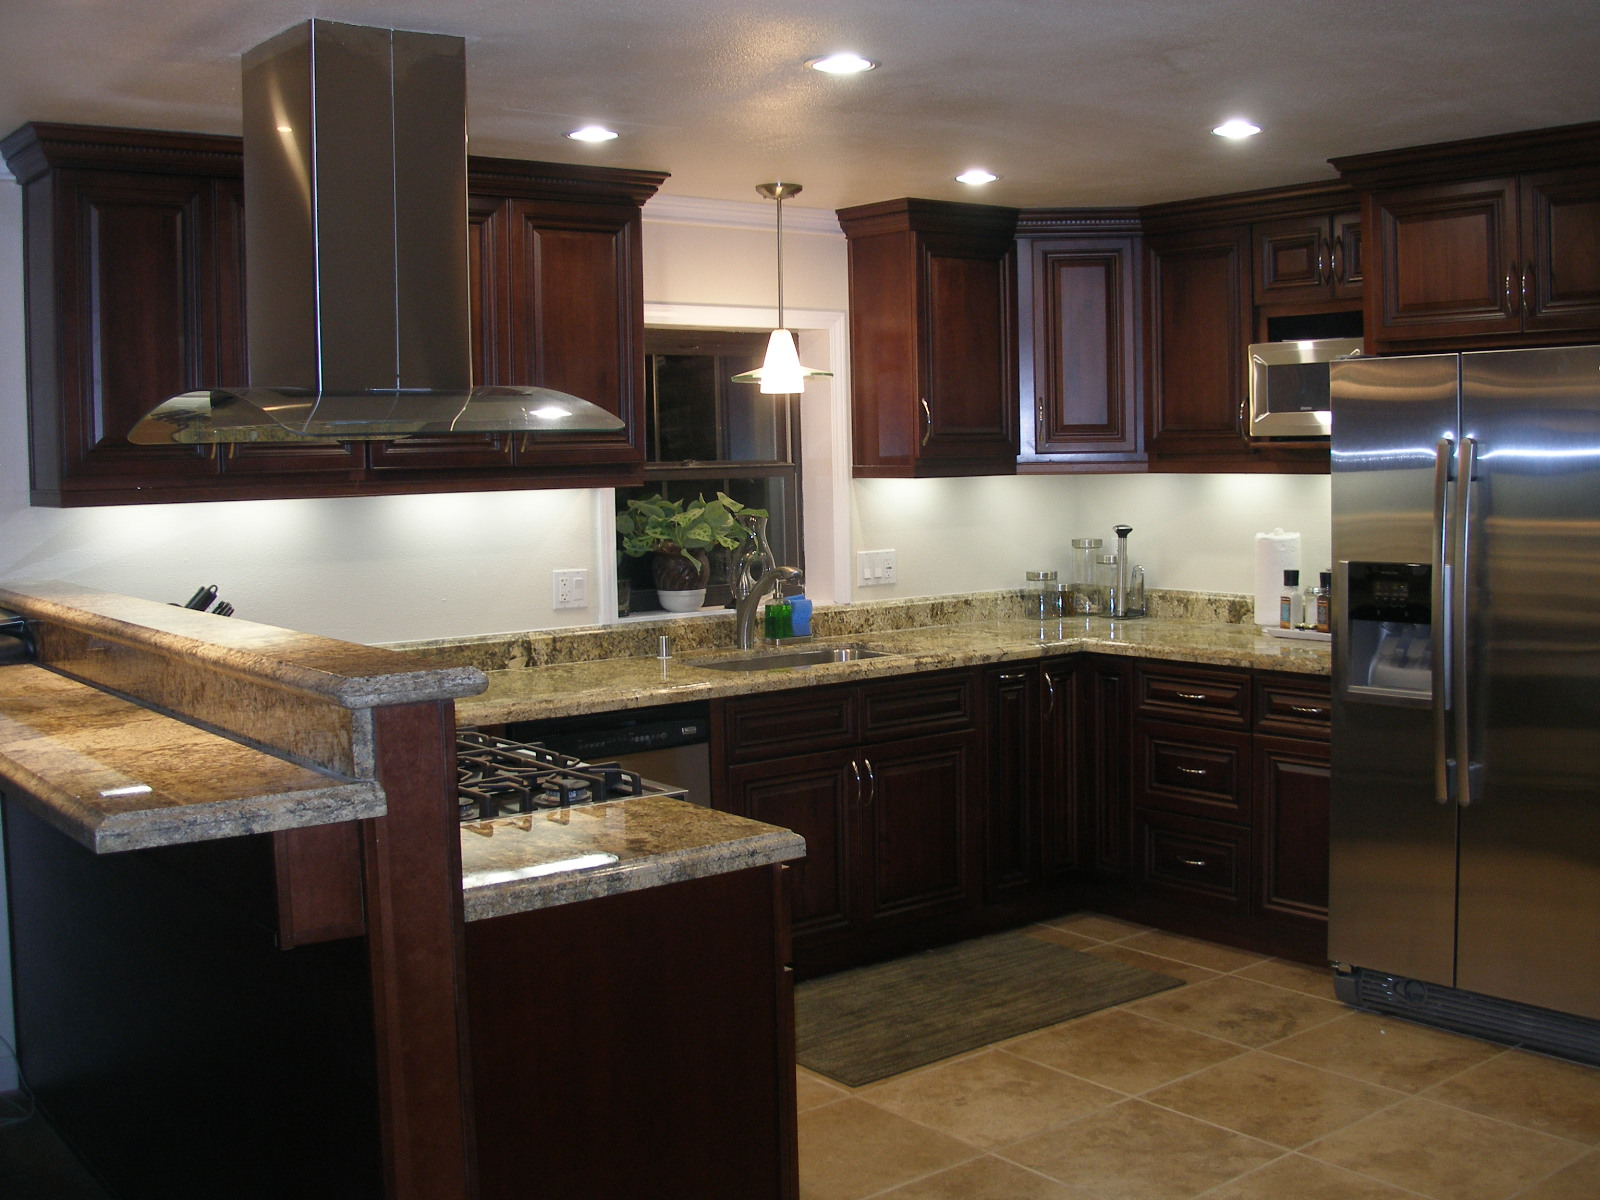 Kitchen Remodeling | Brad T Jones Construction on Small Kitchen Renovation  id=81060